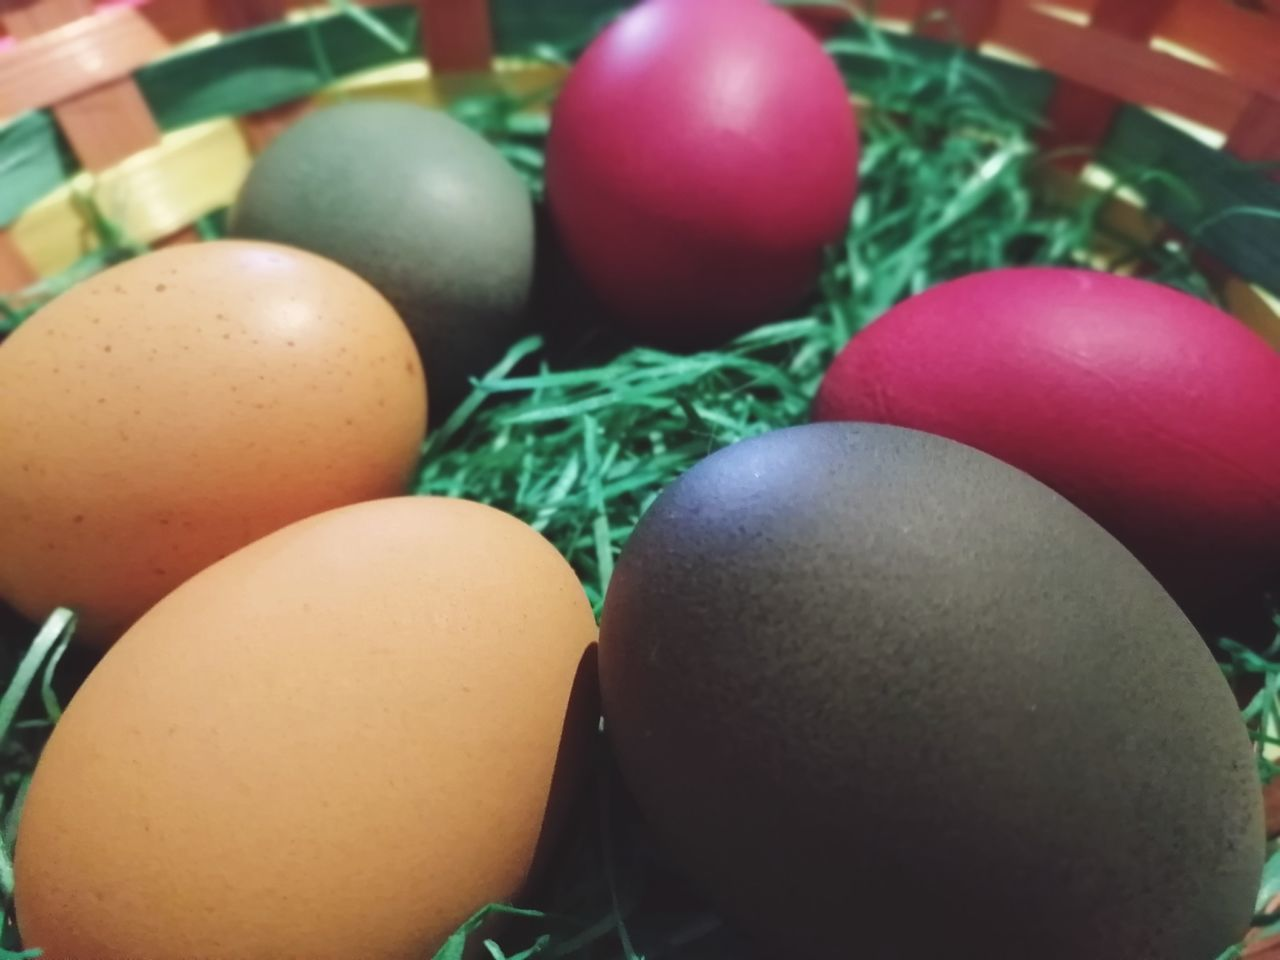 CLOSE-UP OF MULTI COLORED EGGS IN CONTAINER